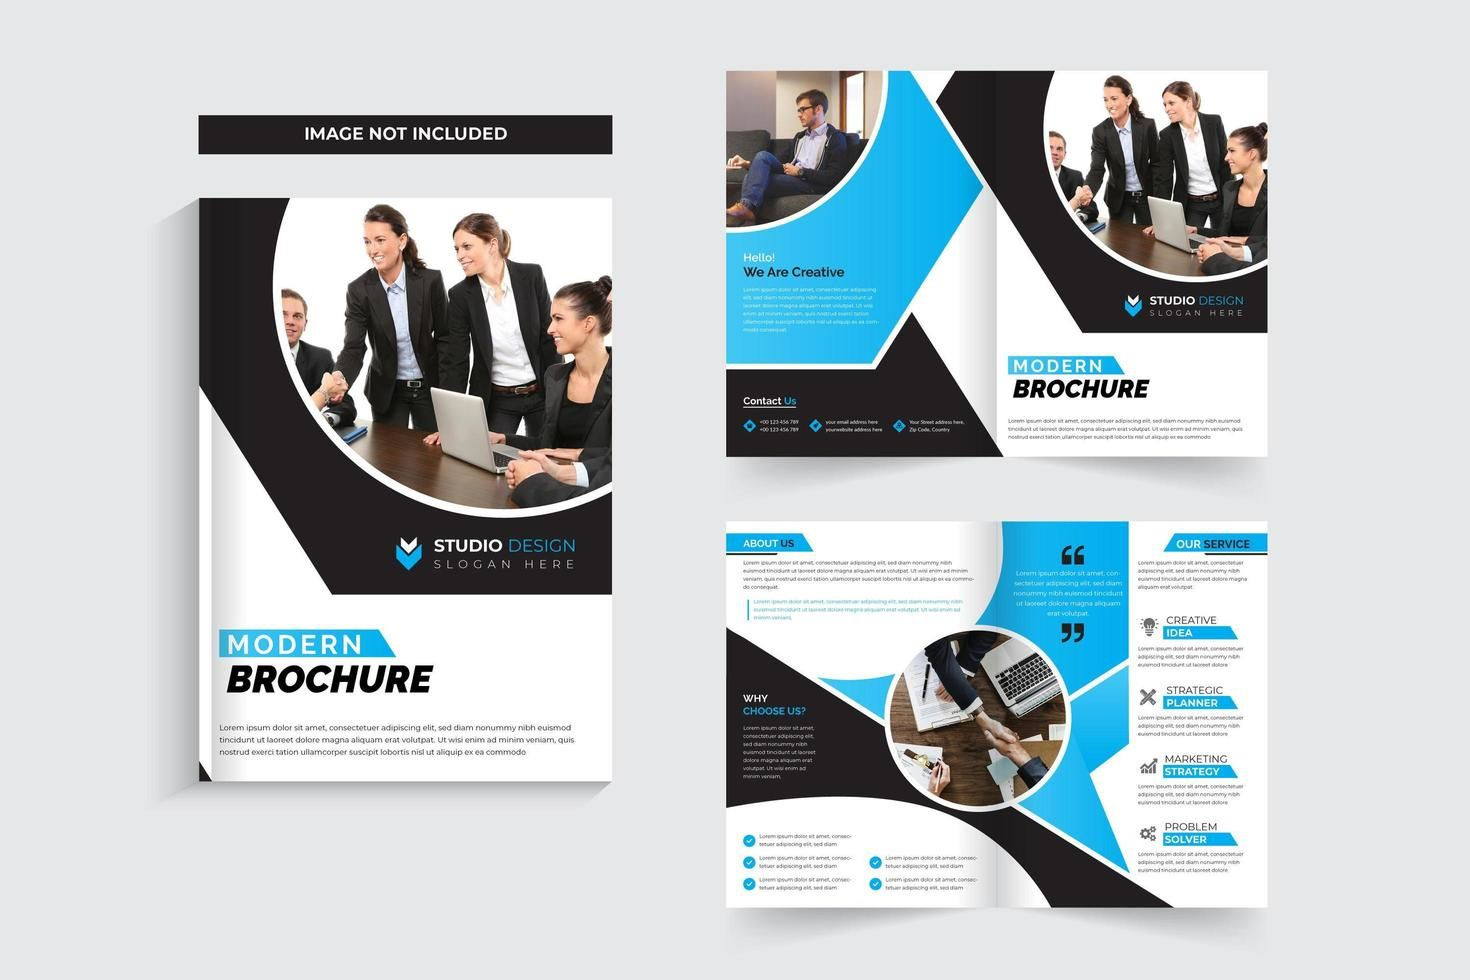 006 Wonderful Brochure Template Free Download Image  Microsoft Publisher Corporate Psd For Adobe IllustratorFull